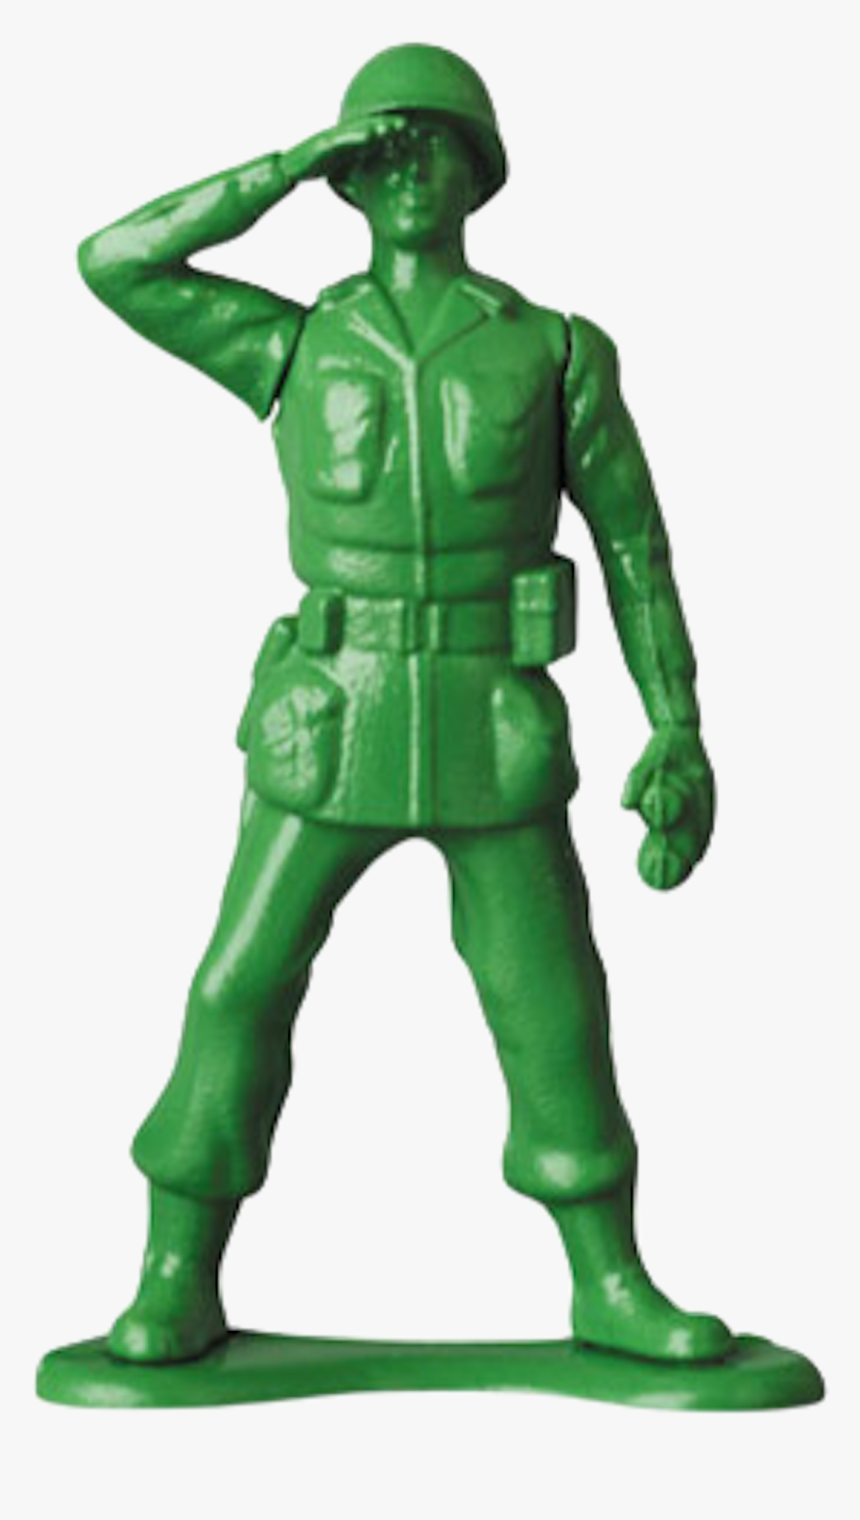 Sarge - Toy Story Green Soldiers, HD Png Download, Free Download